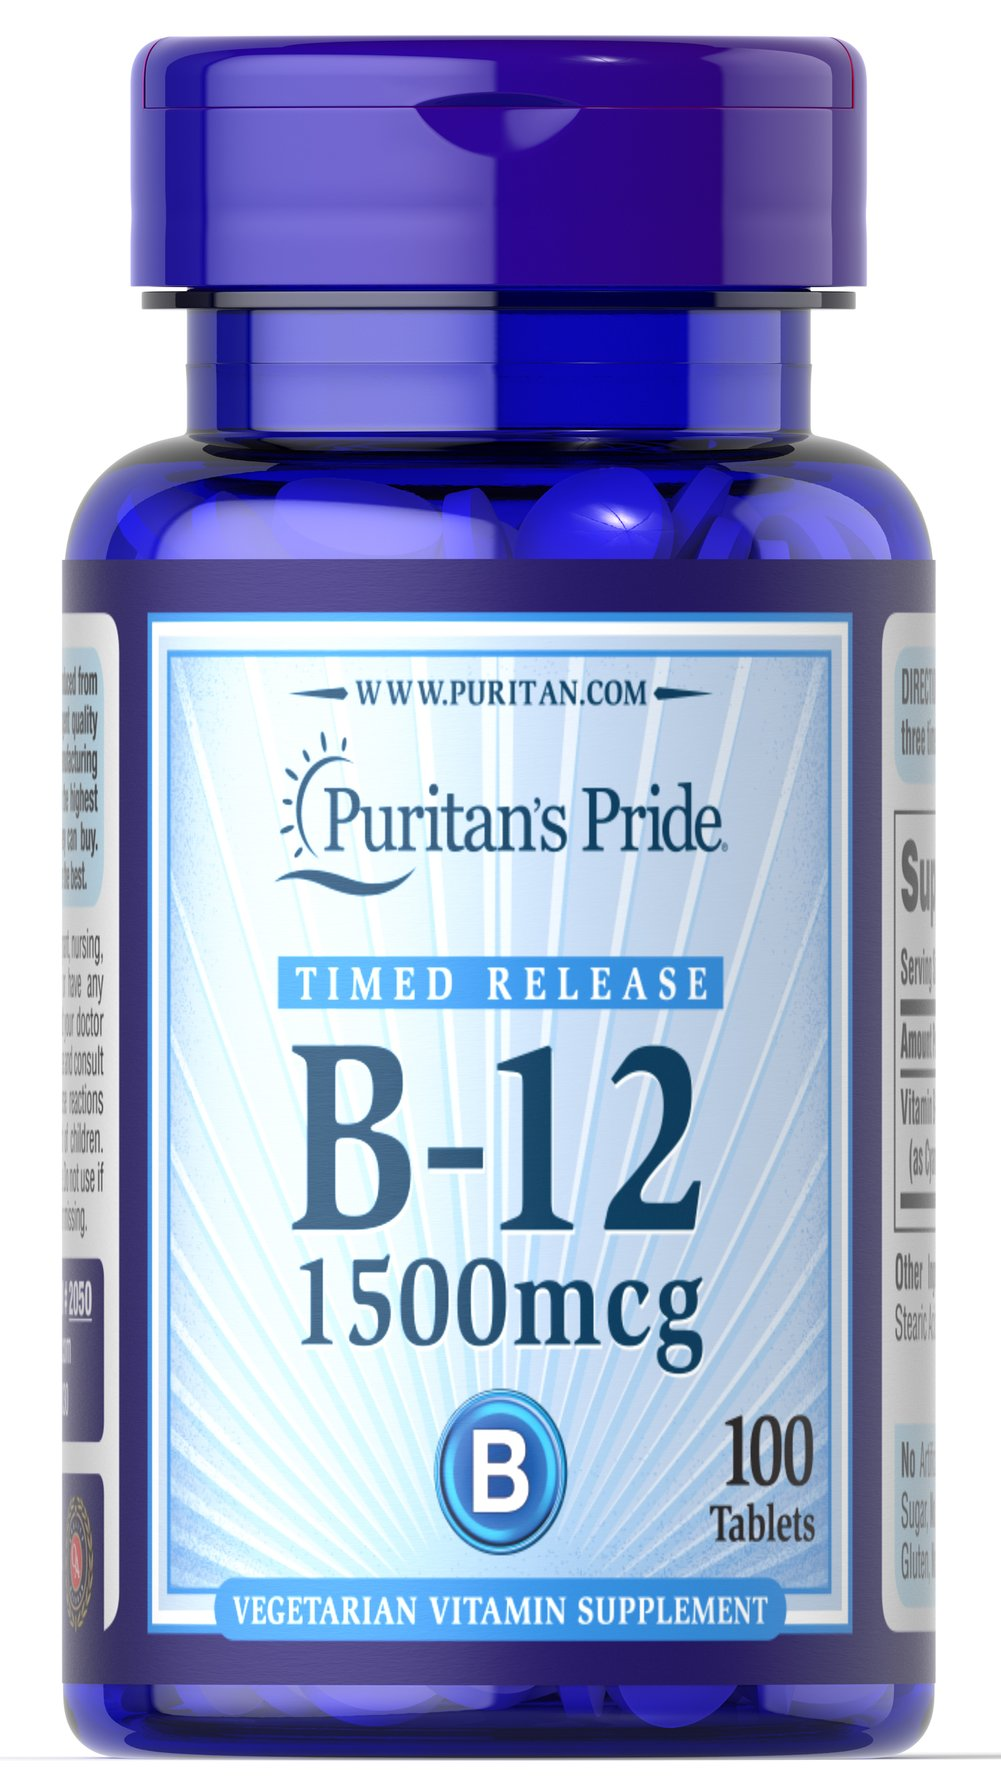 Vitamin B-12 1500 mcg Timed Release <p>Being your best just got easier! As you may know, the B Vitamins play many important roles in the body, including energy metabolism.** Specifically, the vitamin known as B-12 helps maintain proper metabolic functioning and circulatory health, and contributes to the health of the nervous system.** It also aids in normal development and the regeneration of red blood cells.**</p> 100 Caplets 1500 mcg $14.99